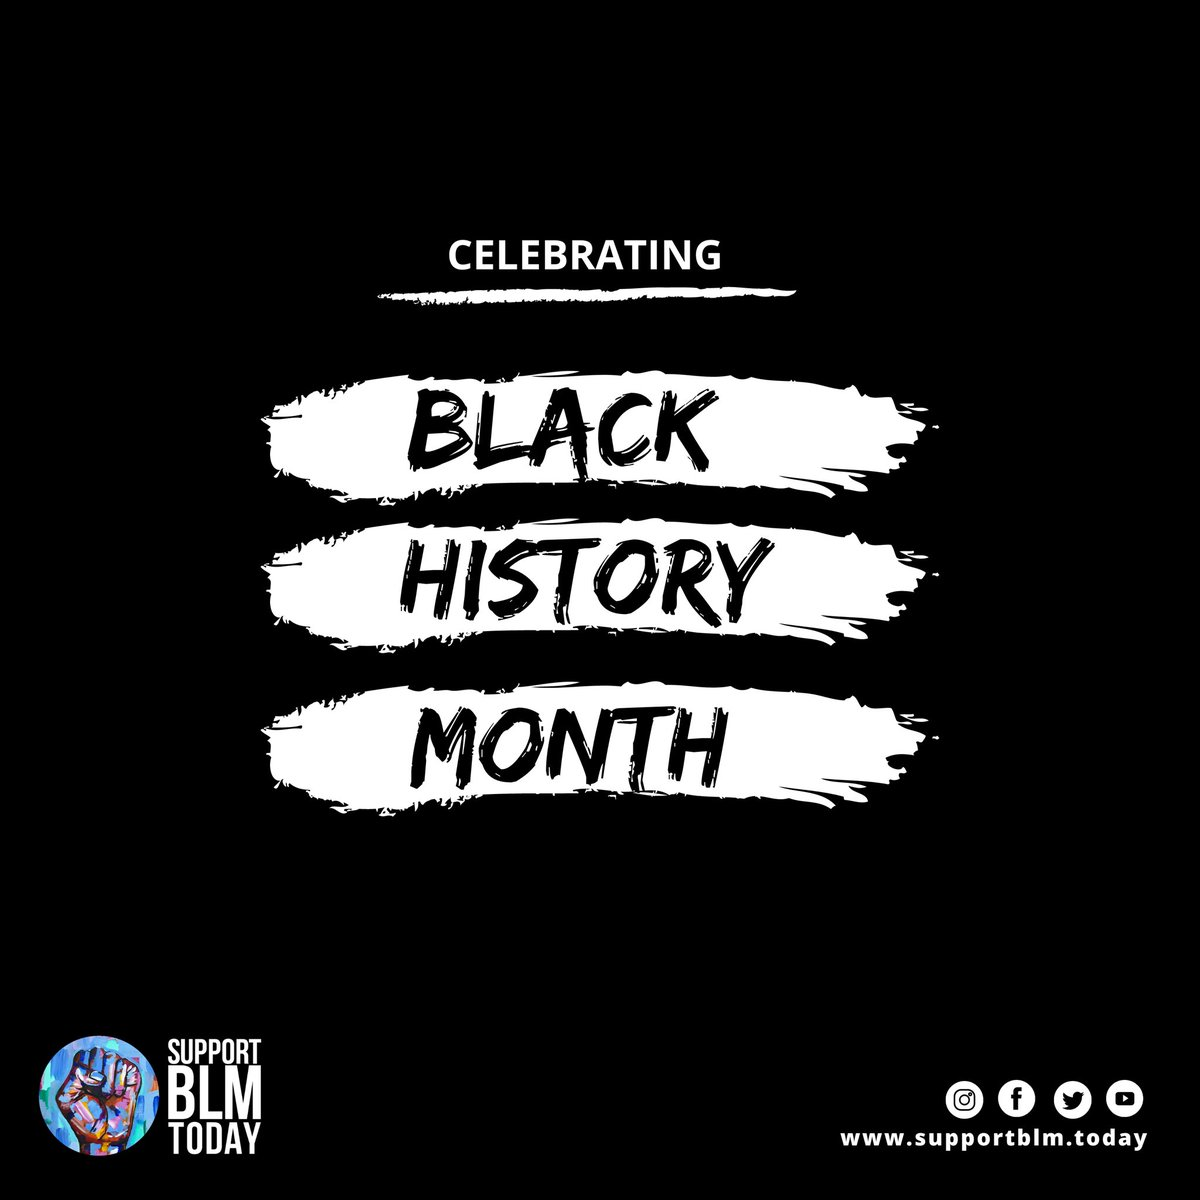 Black History Month is not a month. It's a LIFETIME. Say it loud. I'm Black And I'm Proud!    #blacklivesmatter #blmquotes #blm #blm2021 #equality #racism #solidarity #blacklives #mlk #blmmovement #nojusticenopeace #blacklivesmatterplaza #blmprotest